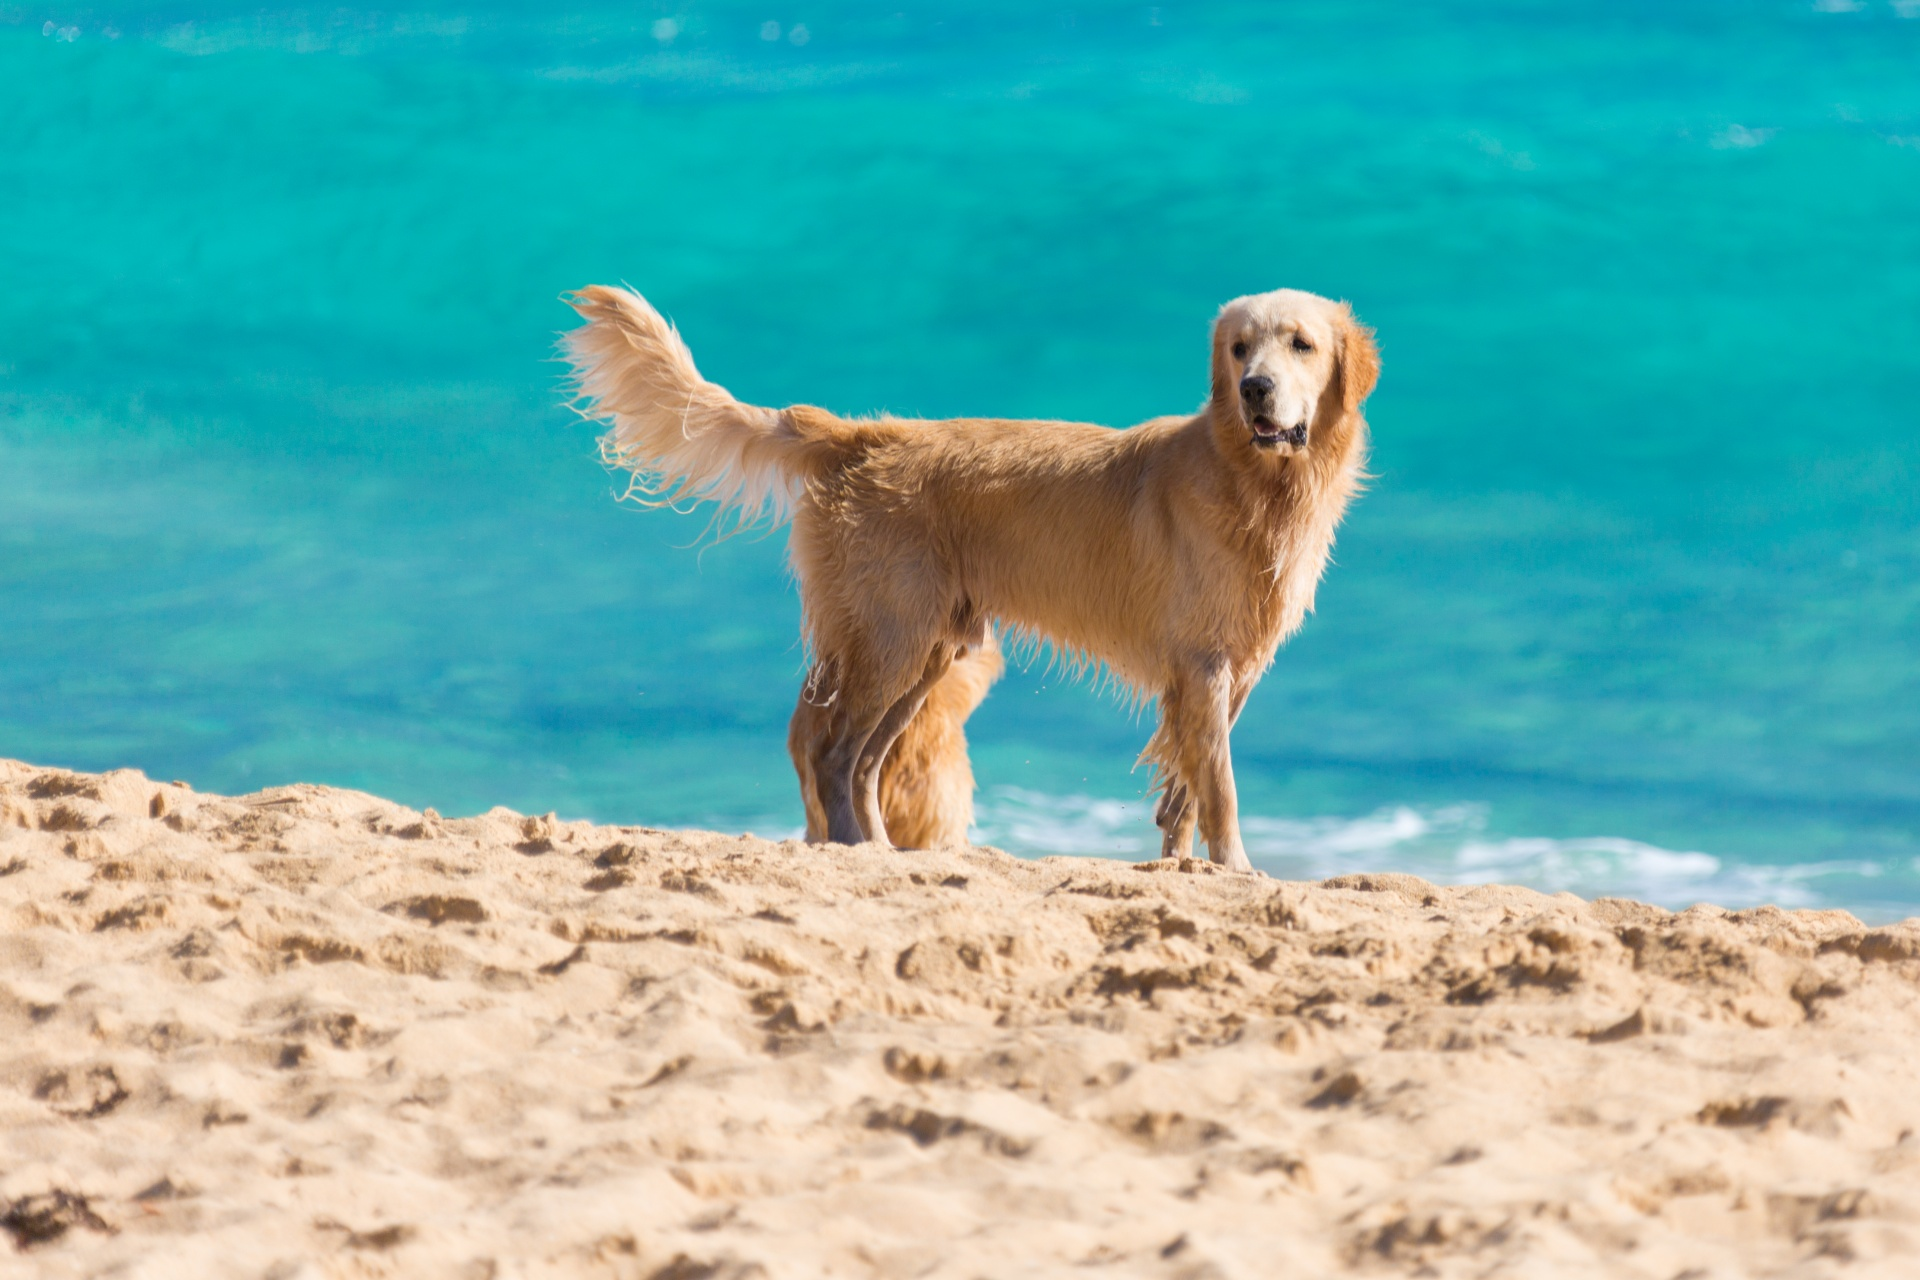 dog-on-the-beach-1457116424iVb